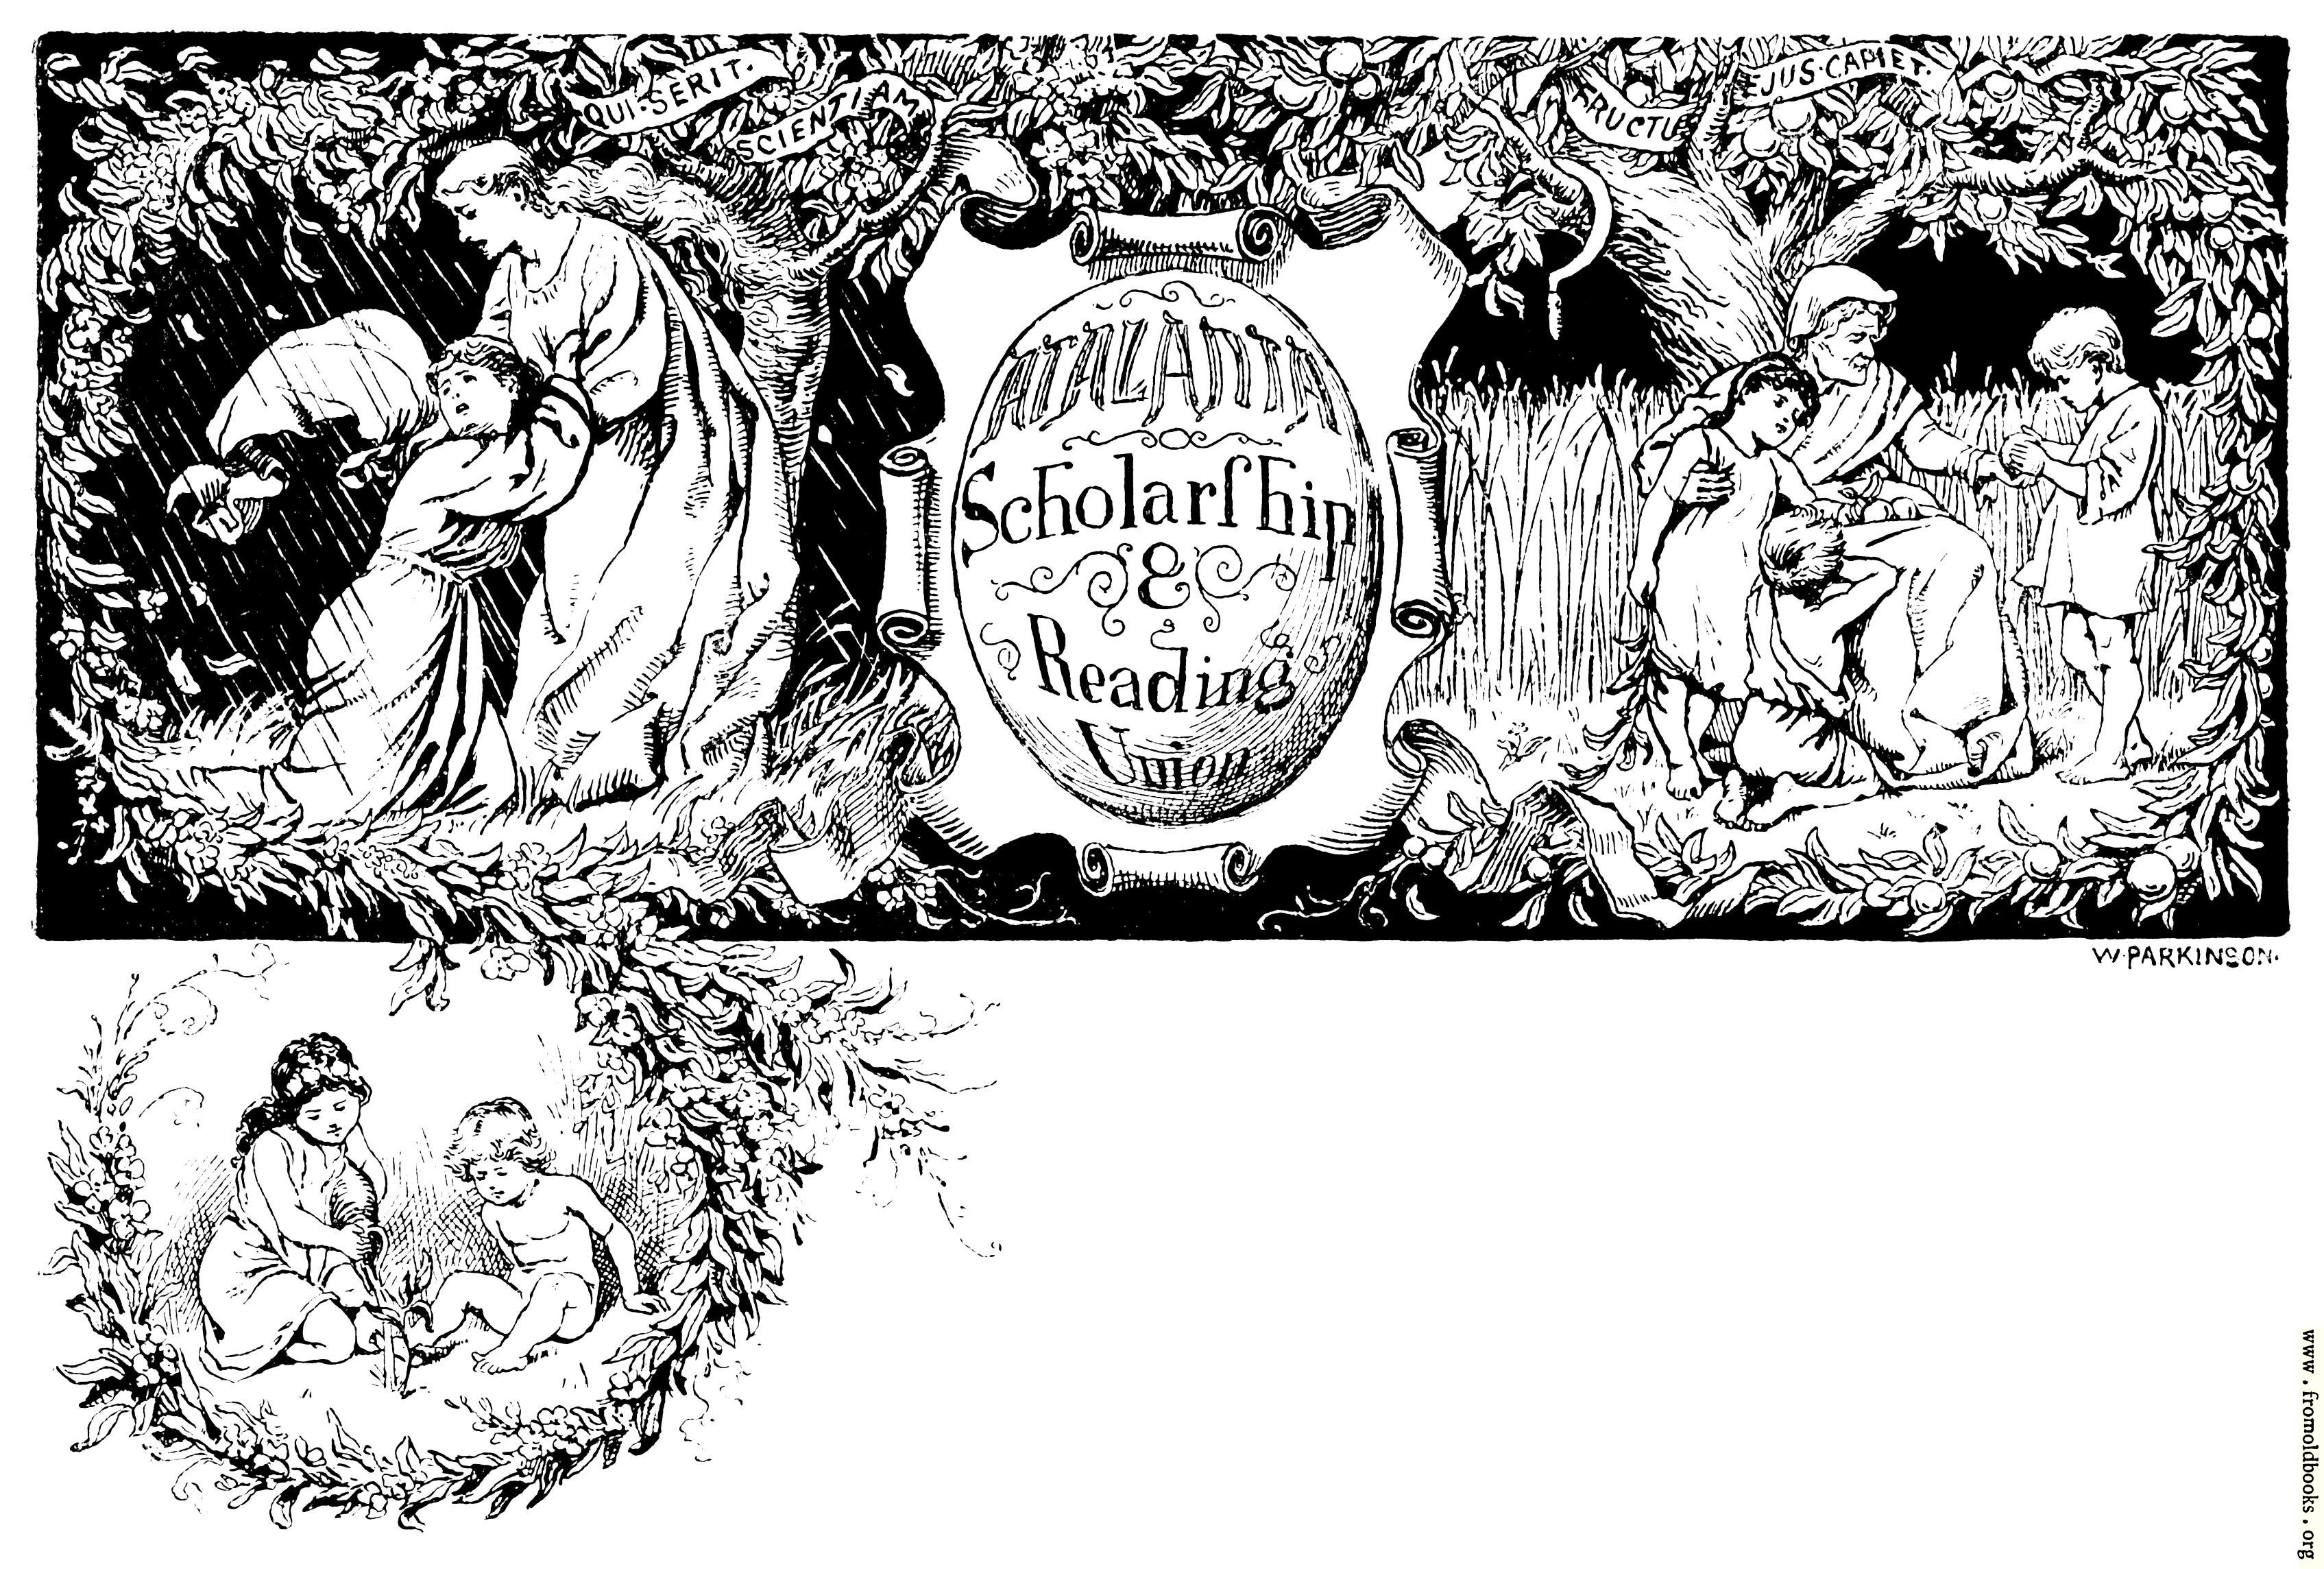 [Picture: Atalanta Scholarship and Reading Union]